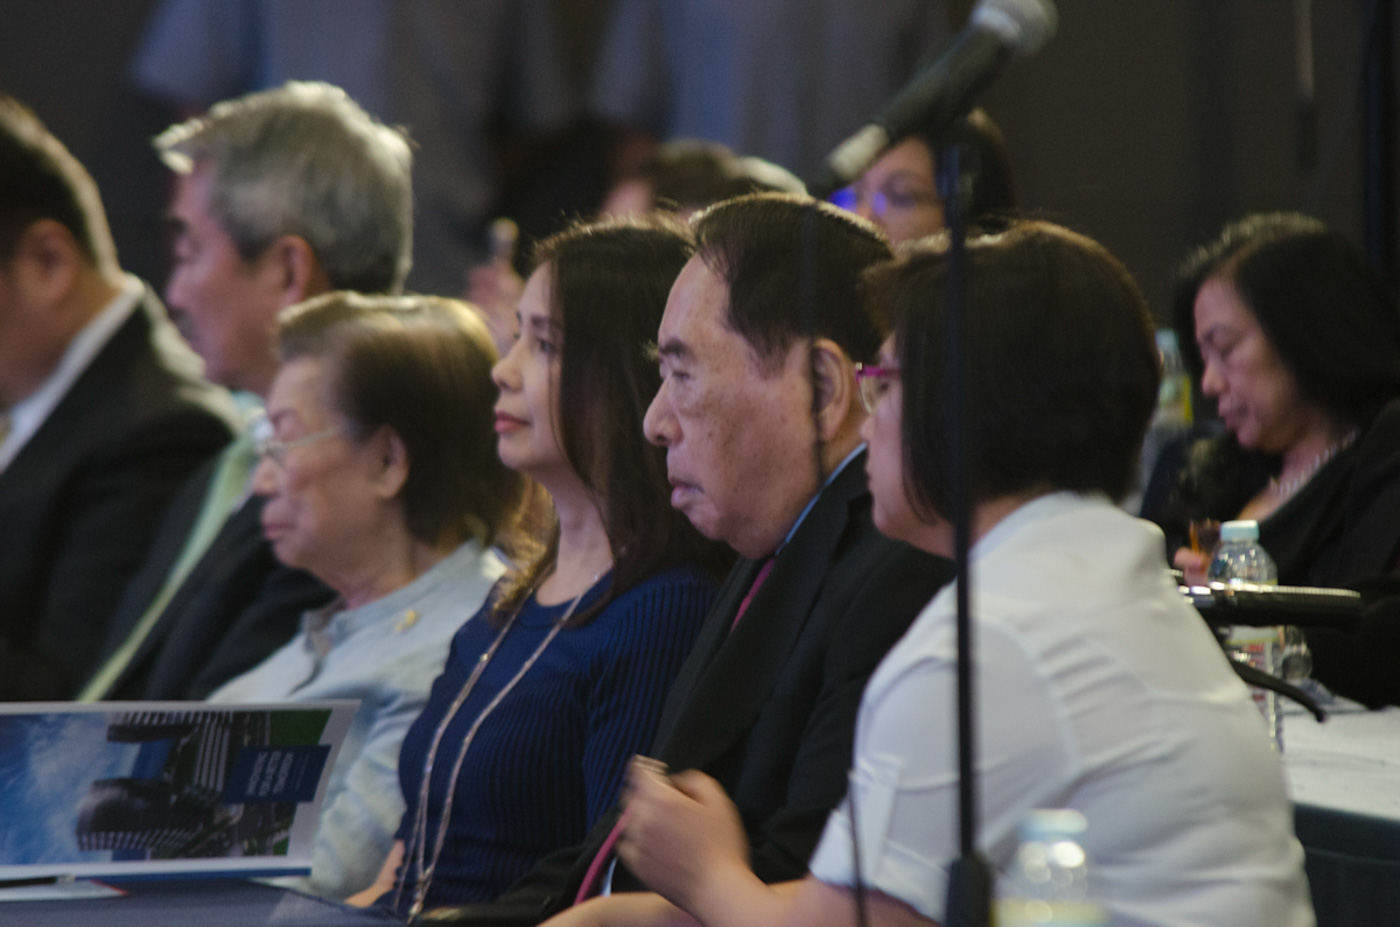 'TATANG.' 92-year-old Henry Sy Sr during the 2016 annual stockholders' meeting of SM Investments Corporation. Photo by Rob Reyes/Rappler